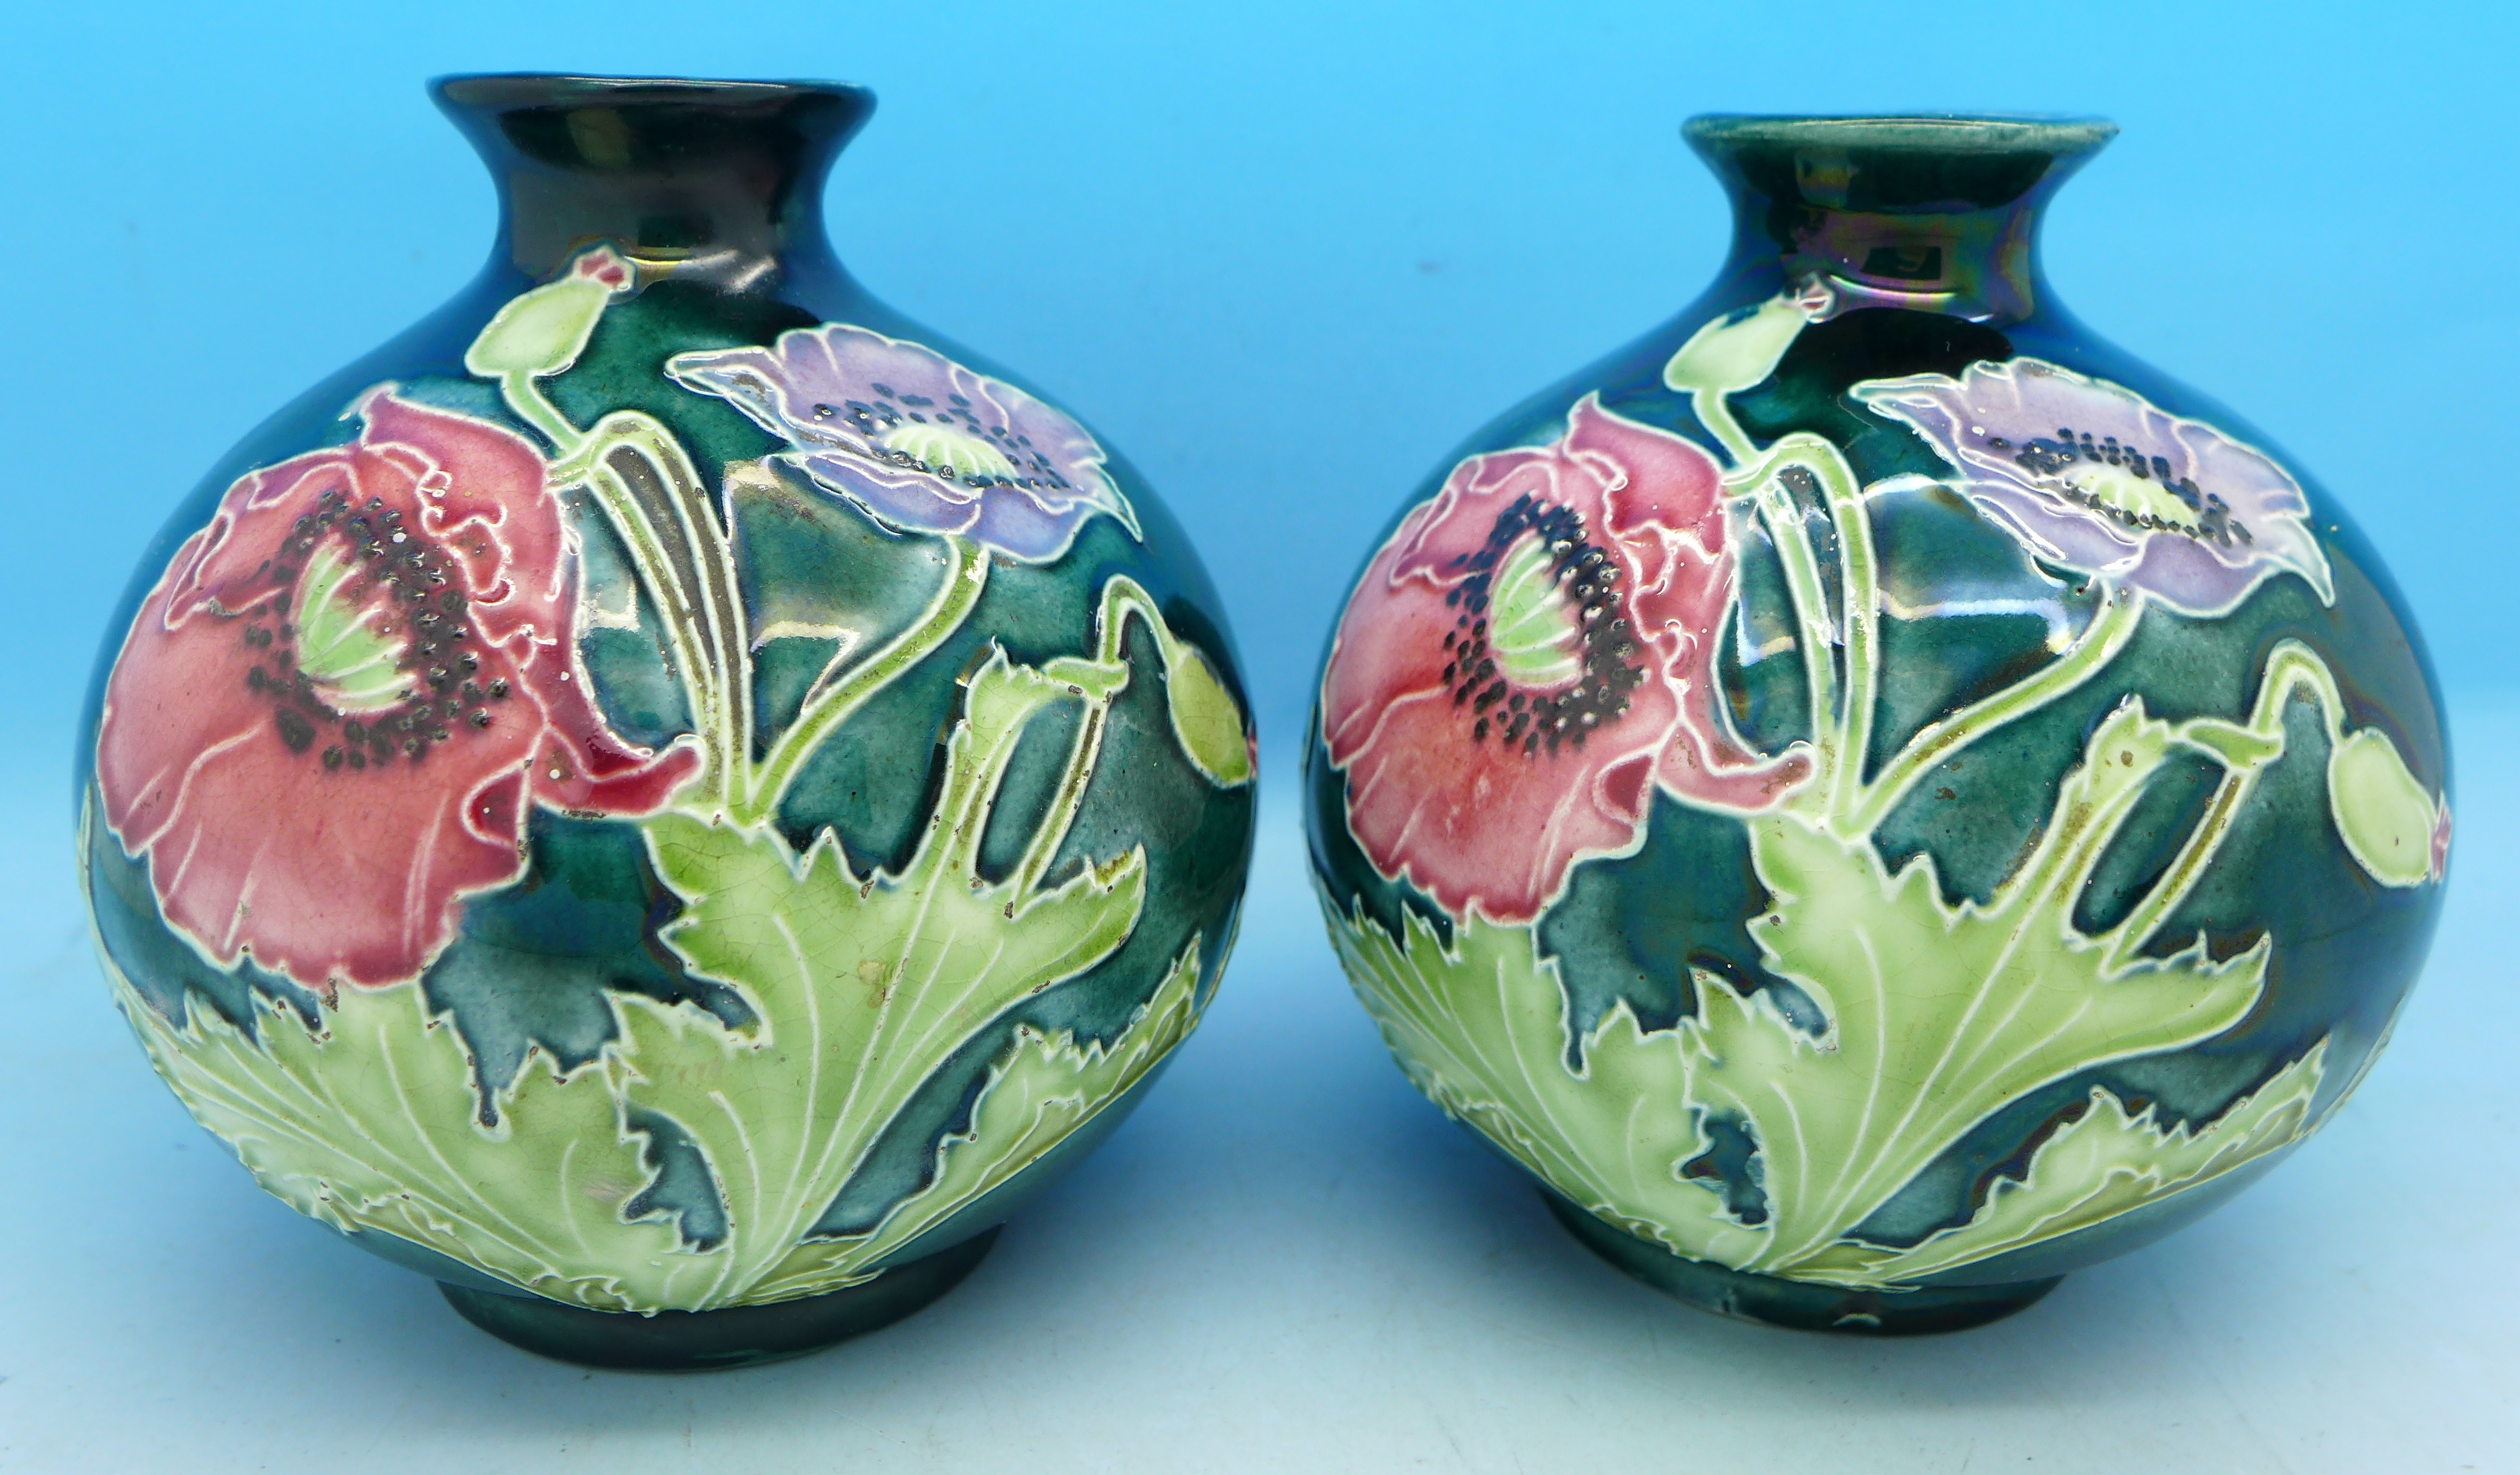 Lot 621  A Pair Of Globular Vases Decorated With